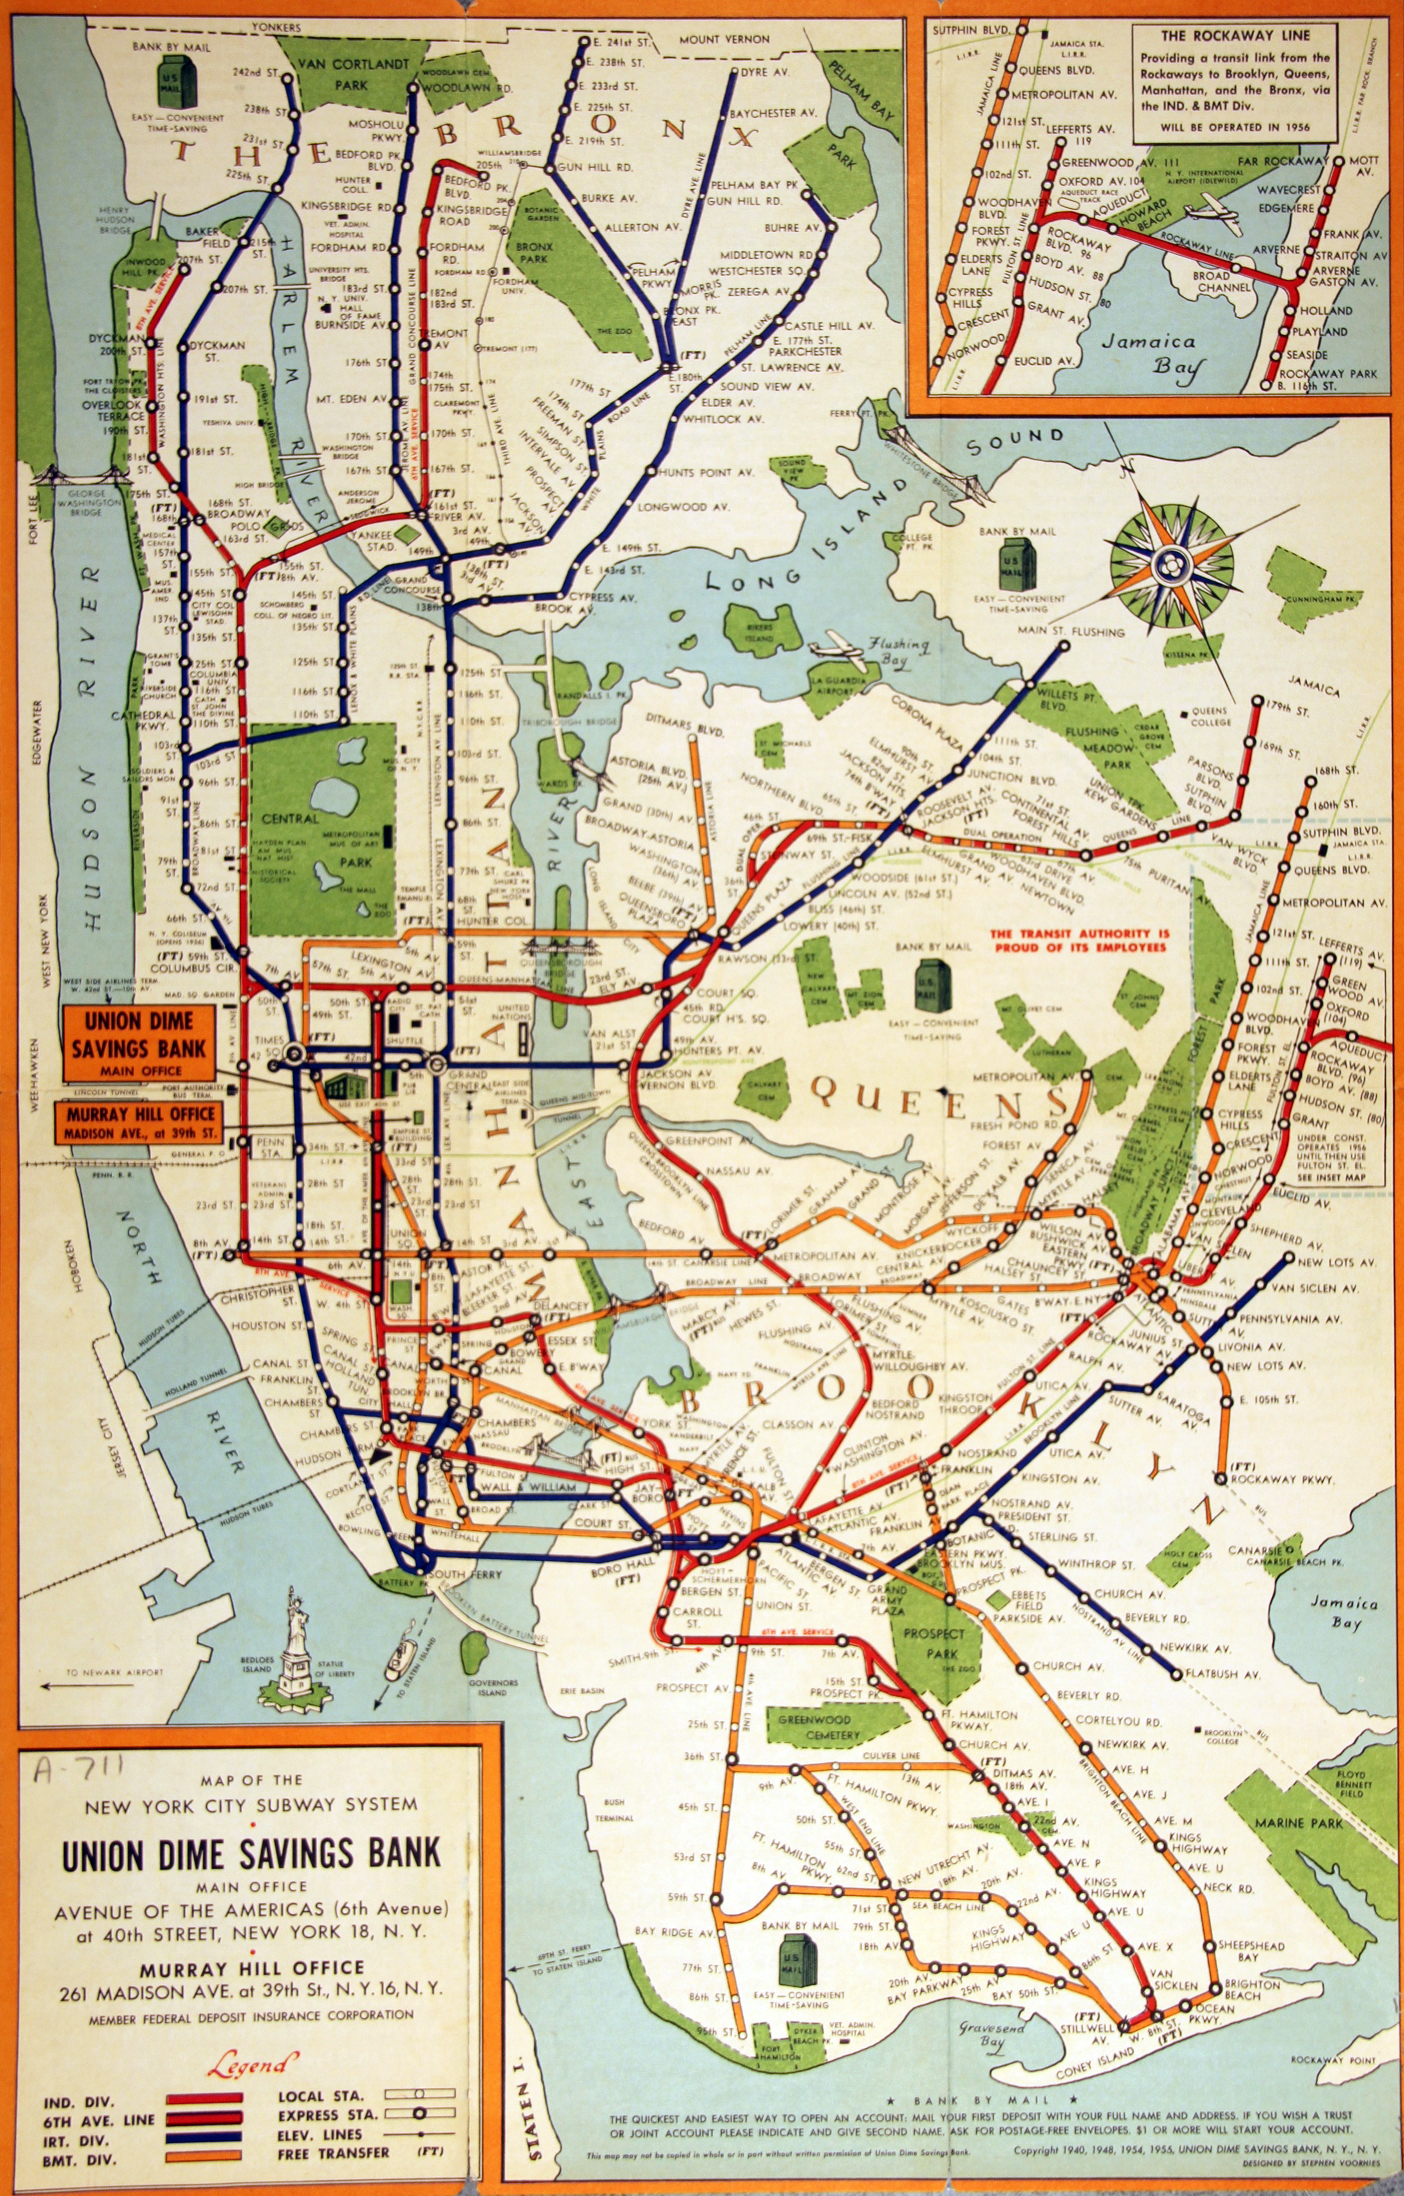 1900 Subway Map New York City.Map Of The New York City Subway System 1955 Teacharchives Org